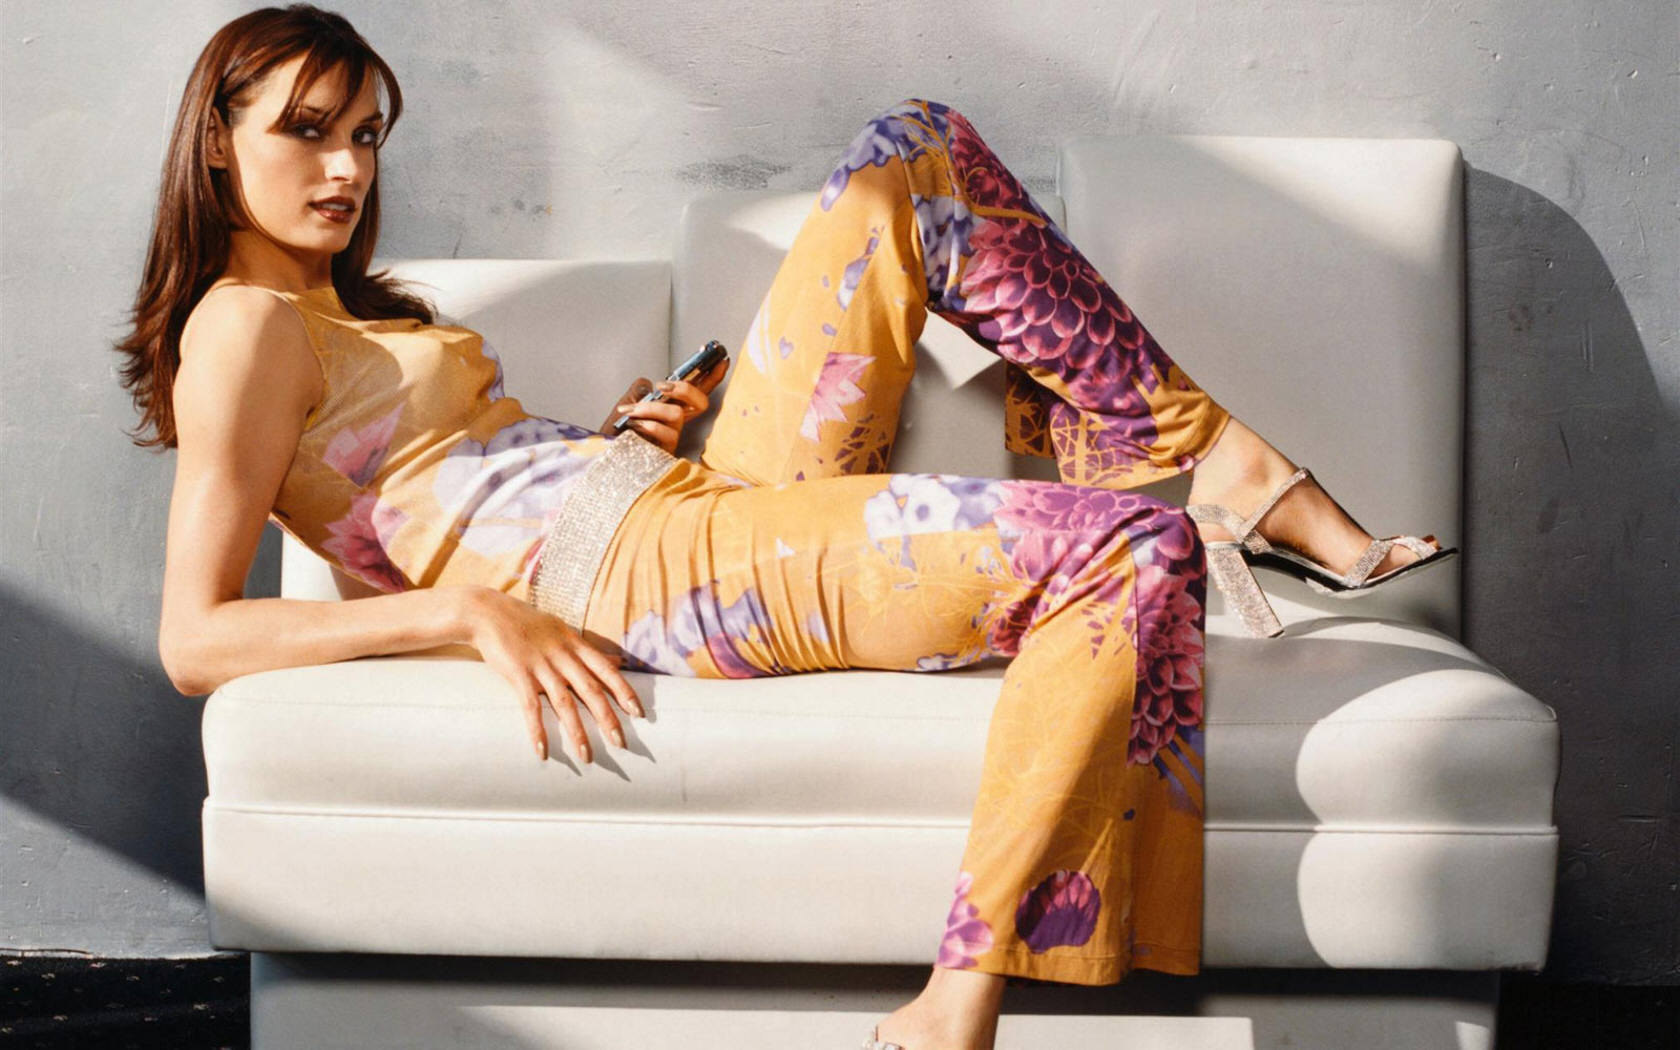 famke janssen Celebrity HD Wallpaper